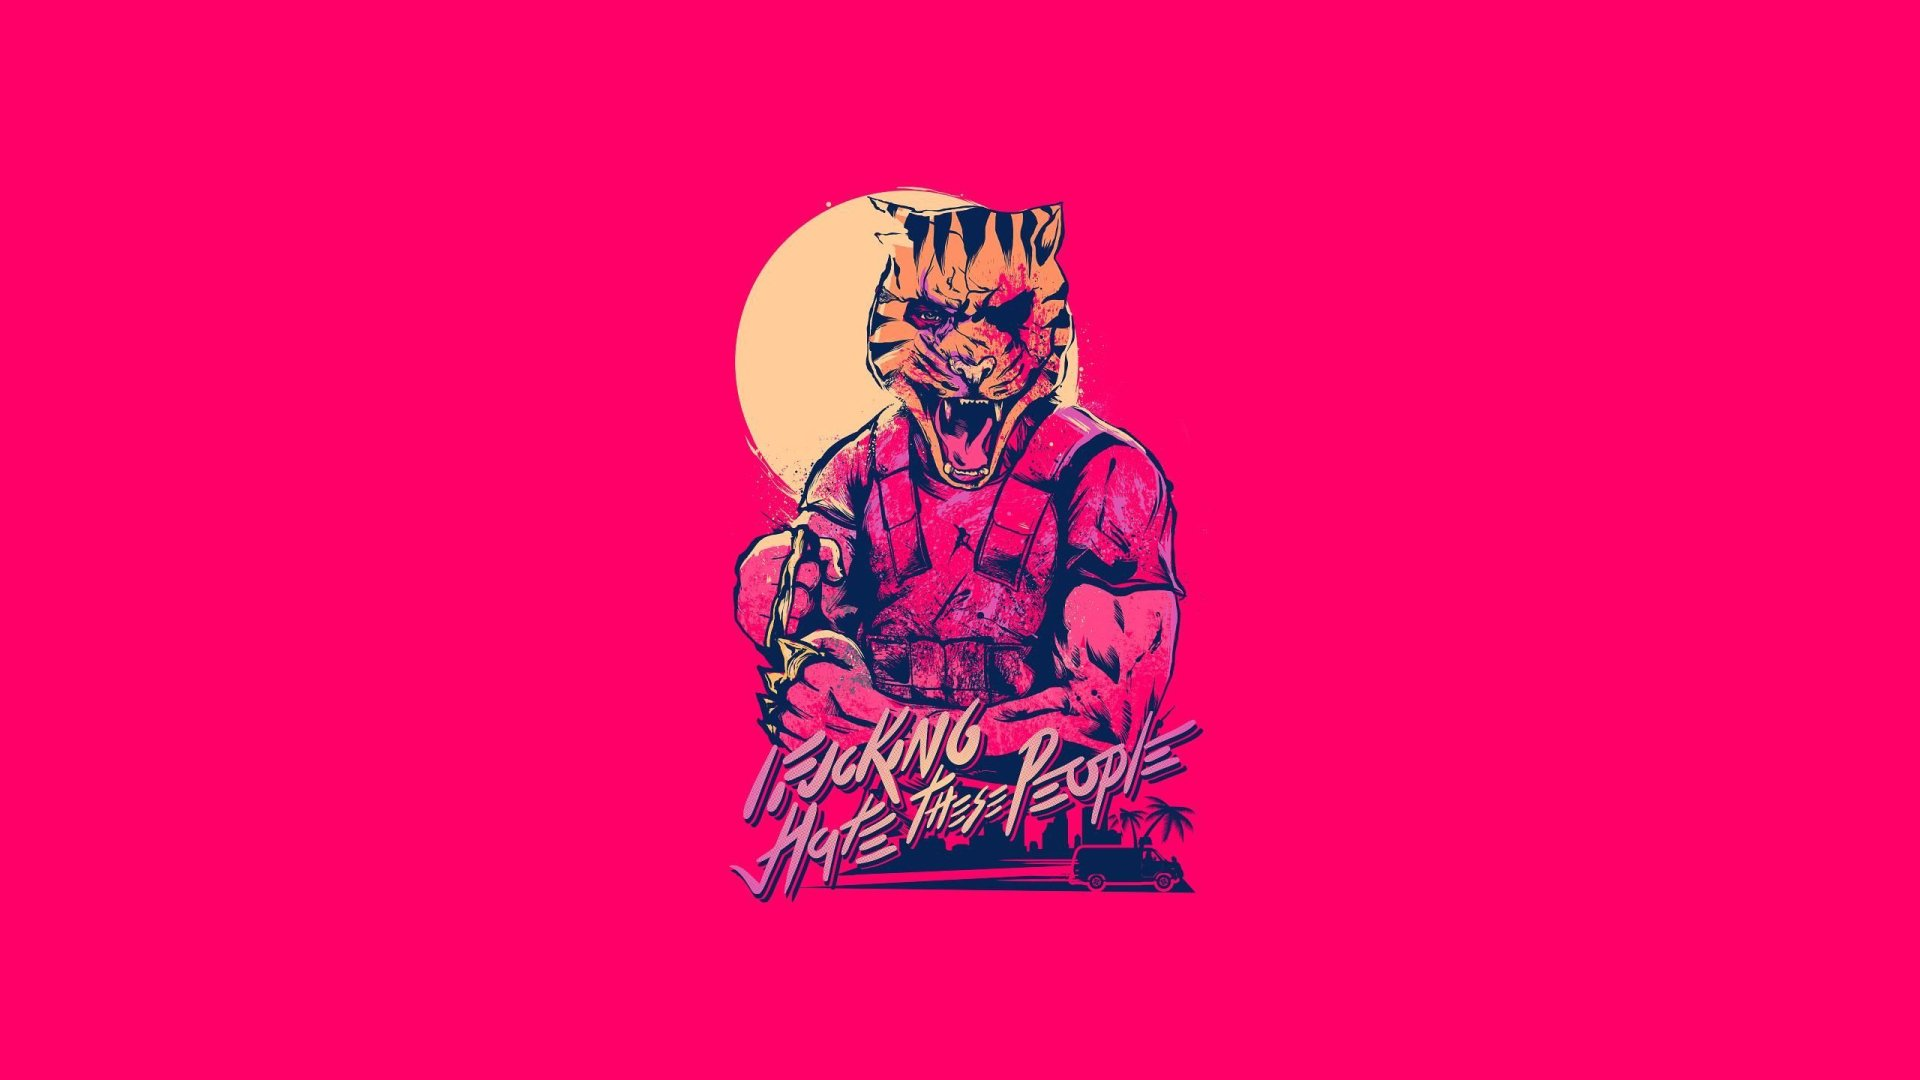 Hotline Miami Iphone Wallpaper Hotline Miami 2 Wrong Number Hd Wallpaper Background